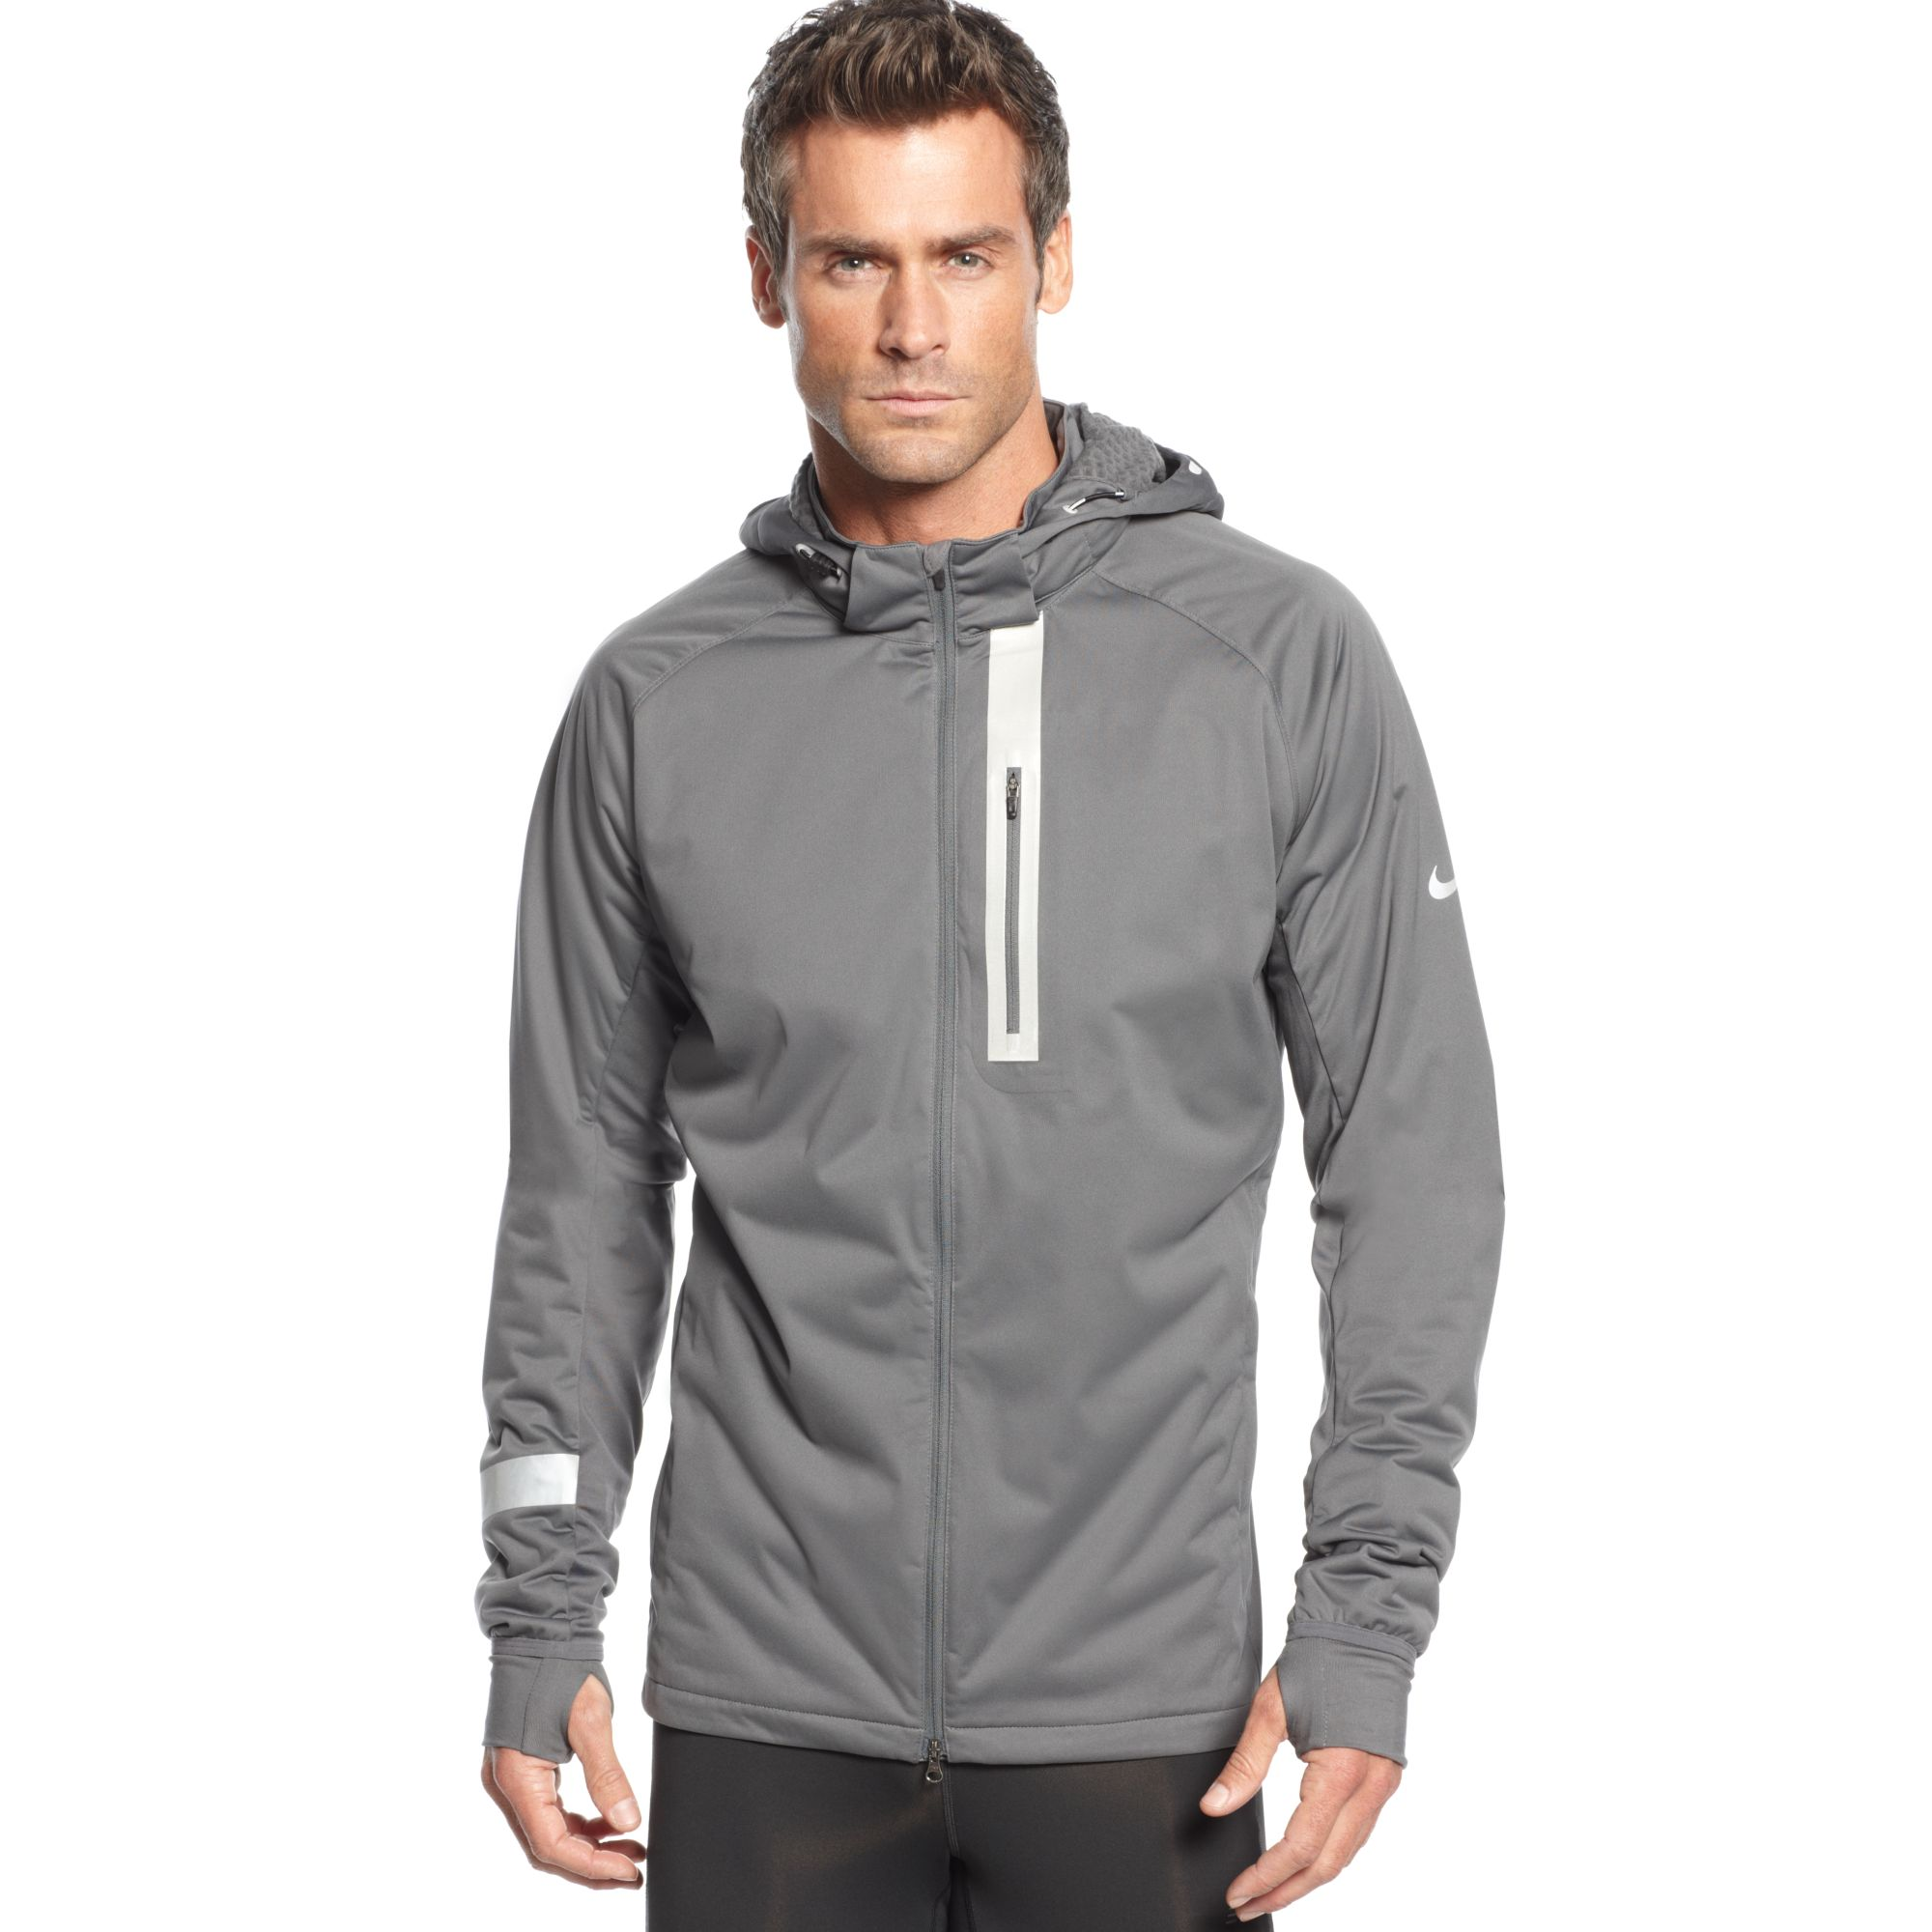 dfb2a8928848 Lyst - Nike Element Shield Max Hooded Jacket in Gray for Men